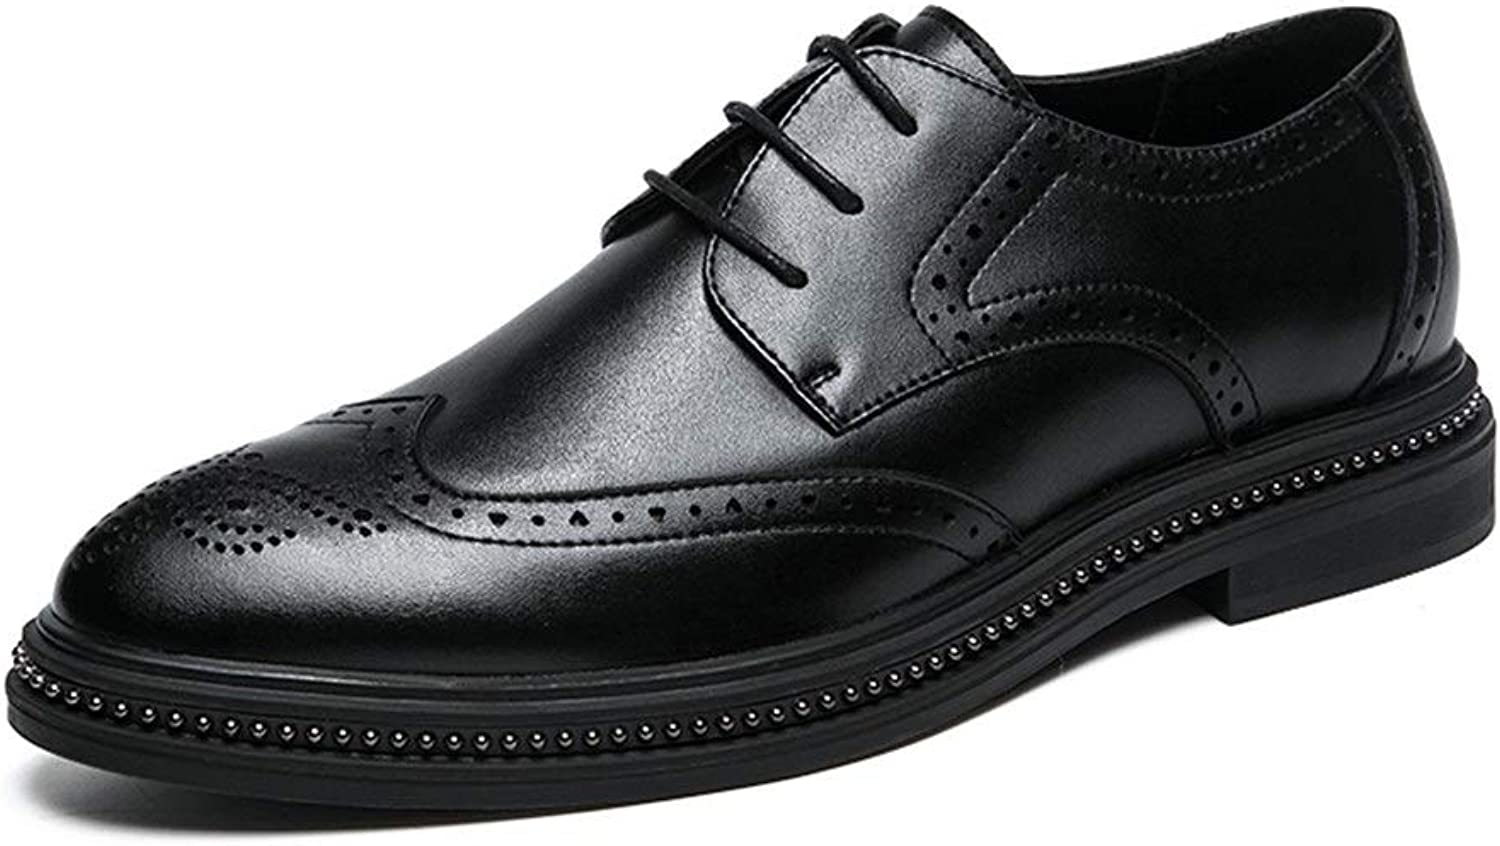 Easy Go Shopping Oxford shoes For Men Brogue shoes Lace Up Microfiber Leather Retro Casual Classic Engraved Cricket shoes (color   Black, Size   8 UK)